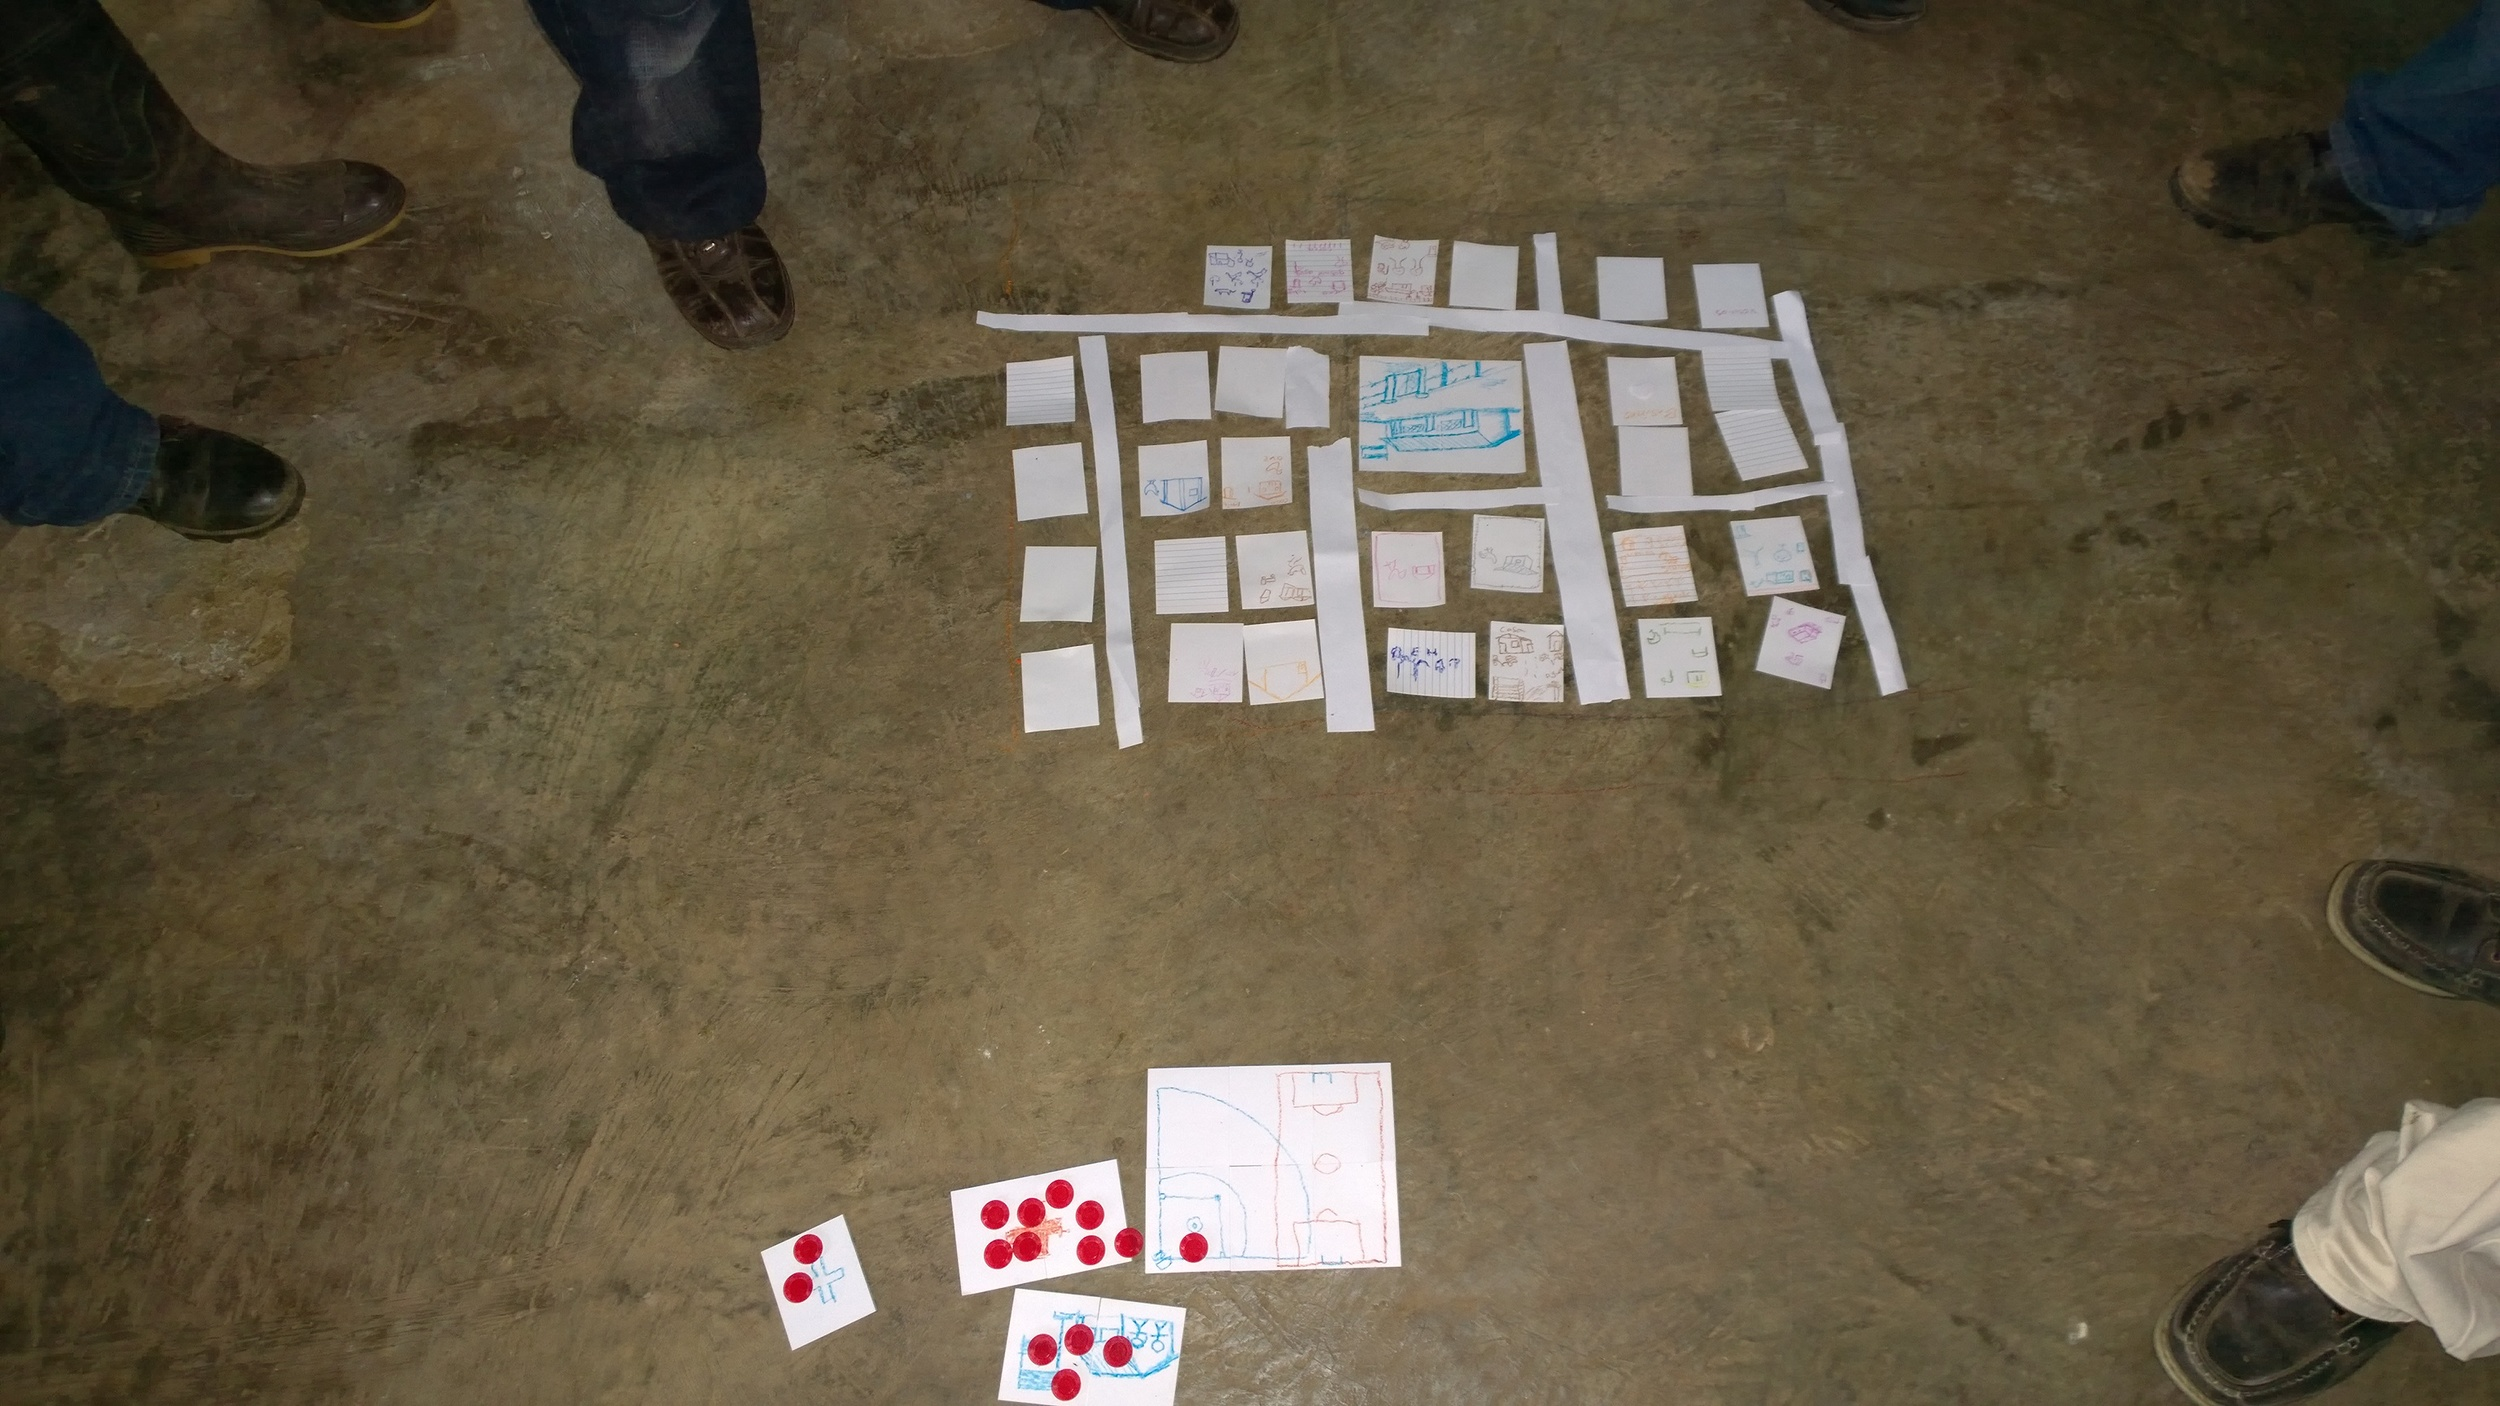 Village layout exercise with community voting